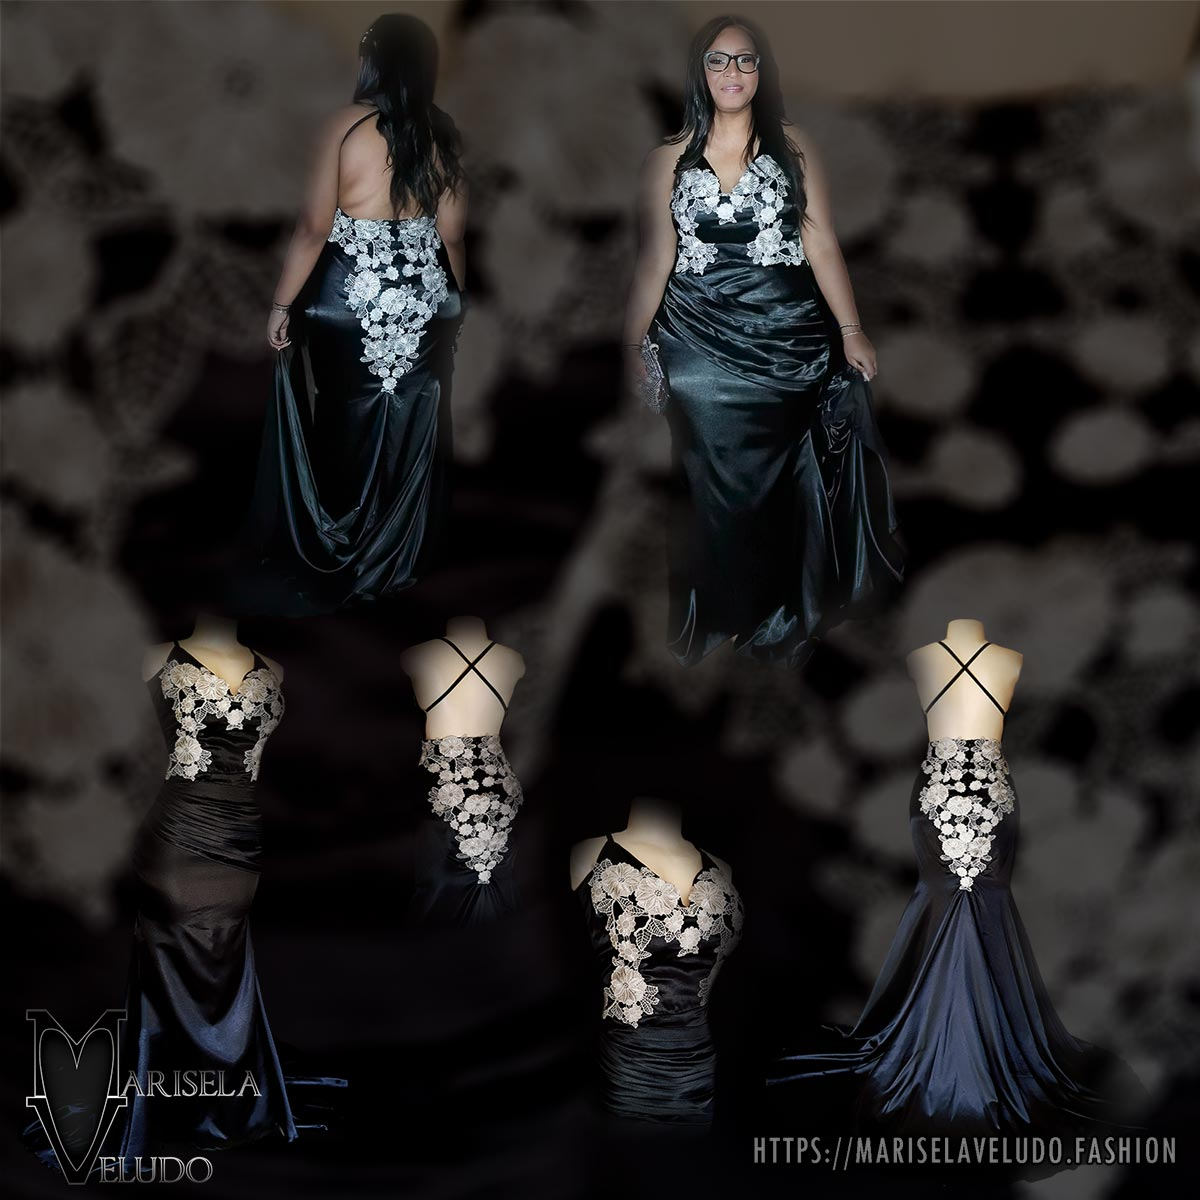 Black satin long fitted prom dress 2 a black satin long fitted prom dress with silver lace detail, will add an elegance to your special event.